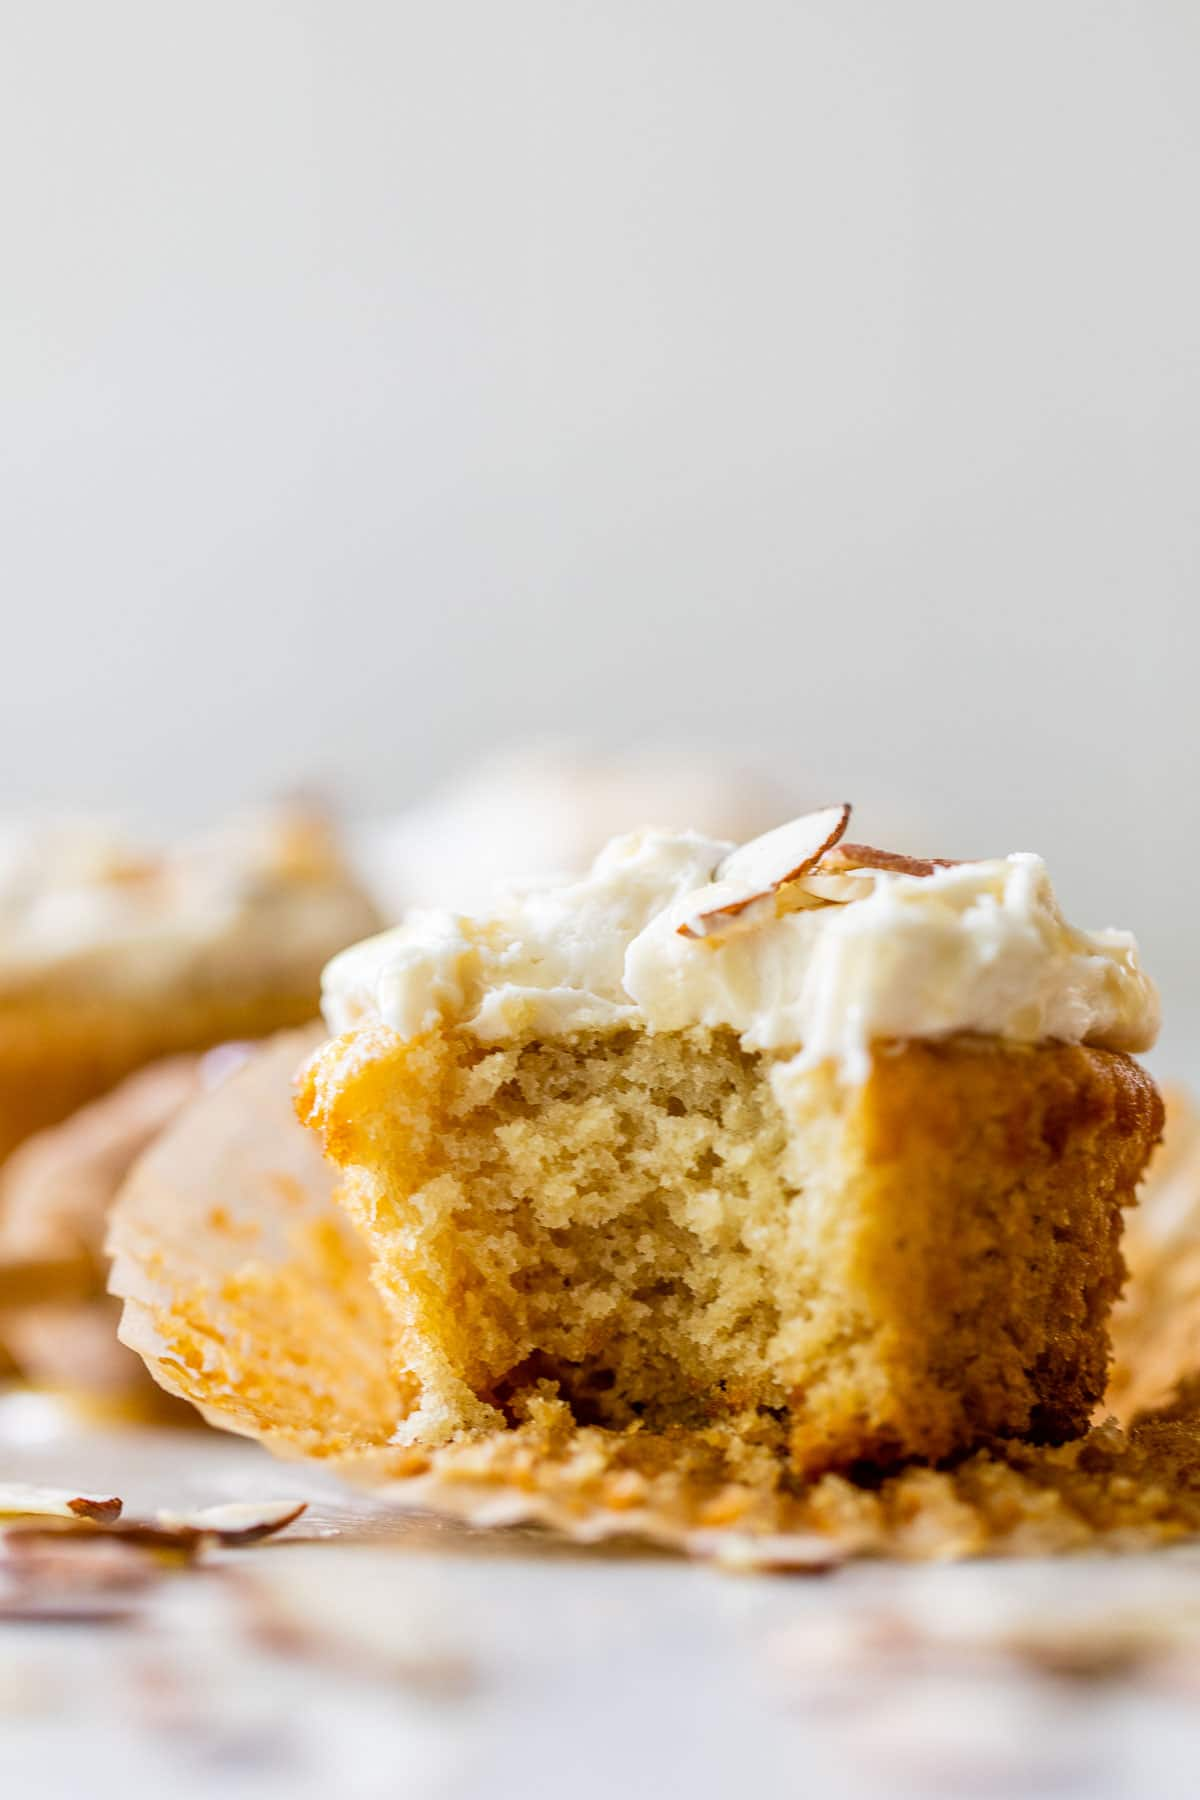 a yellow cupcake with a bite taken out of it